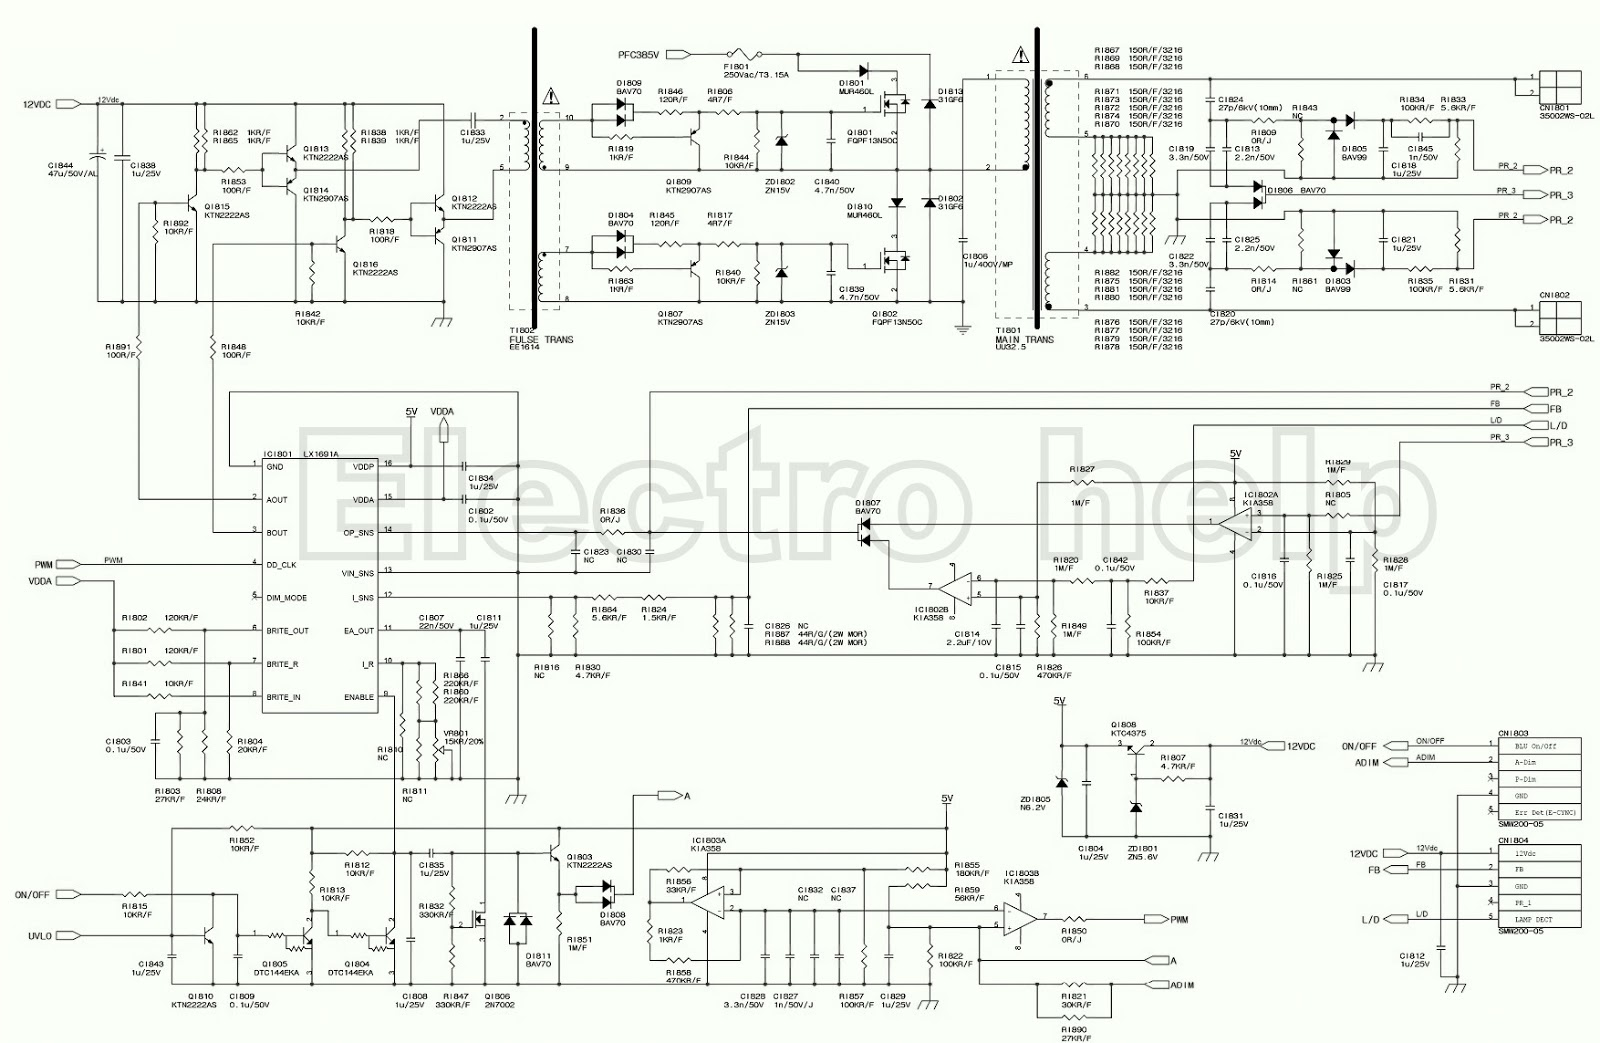 Sony Lcd Tv Power Supply Circuit Diagram Data Abb Earthleakage Breaker F364 Nib Wire Schema U2022 Rh Lemise Co Pdf Repair Schematic